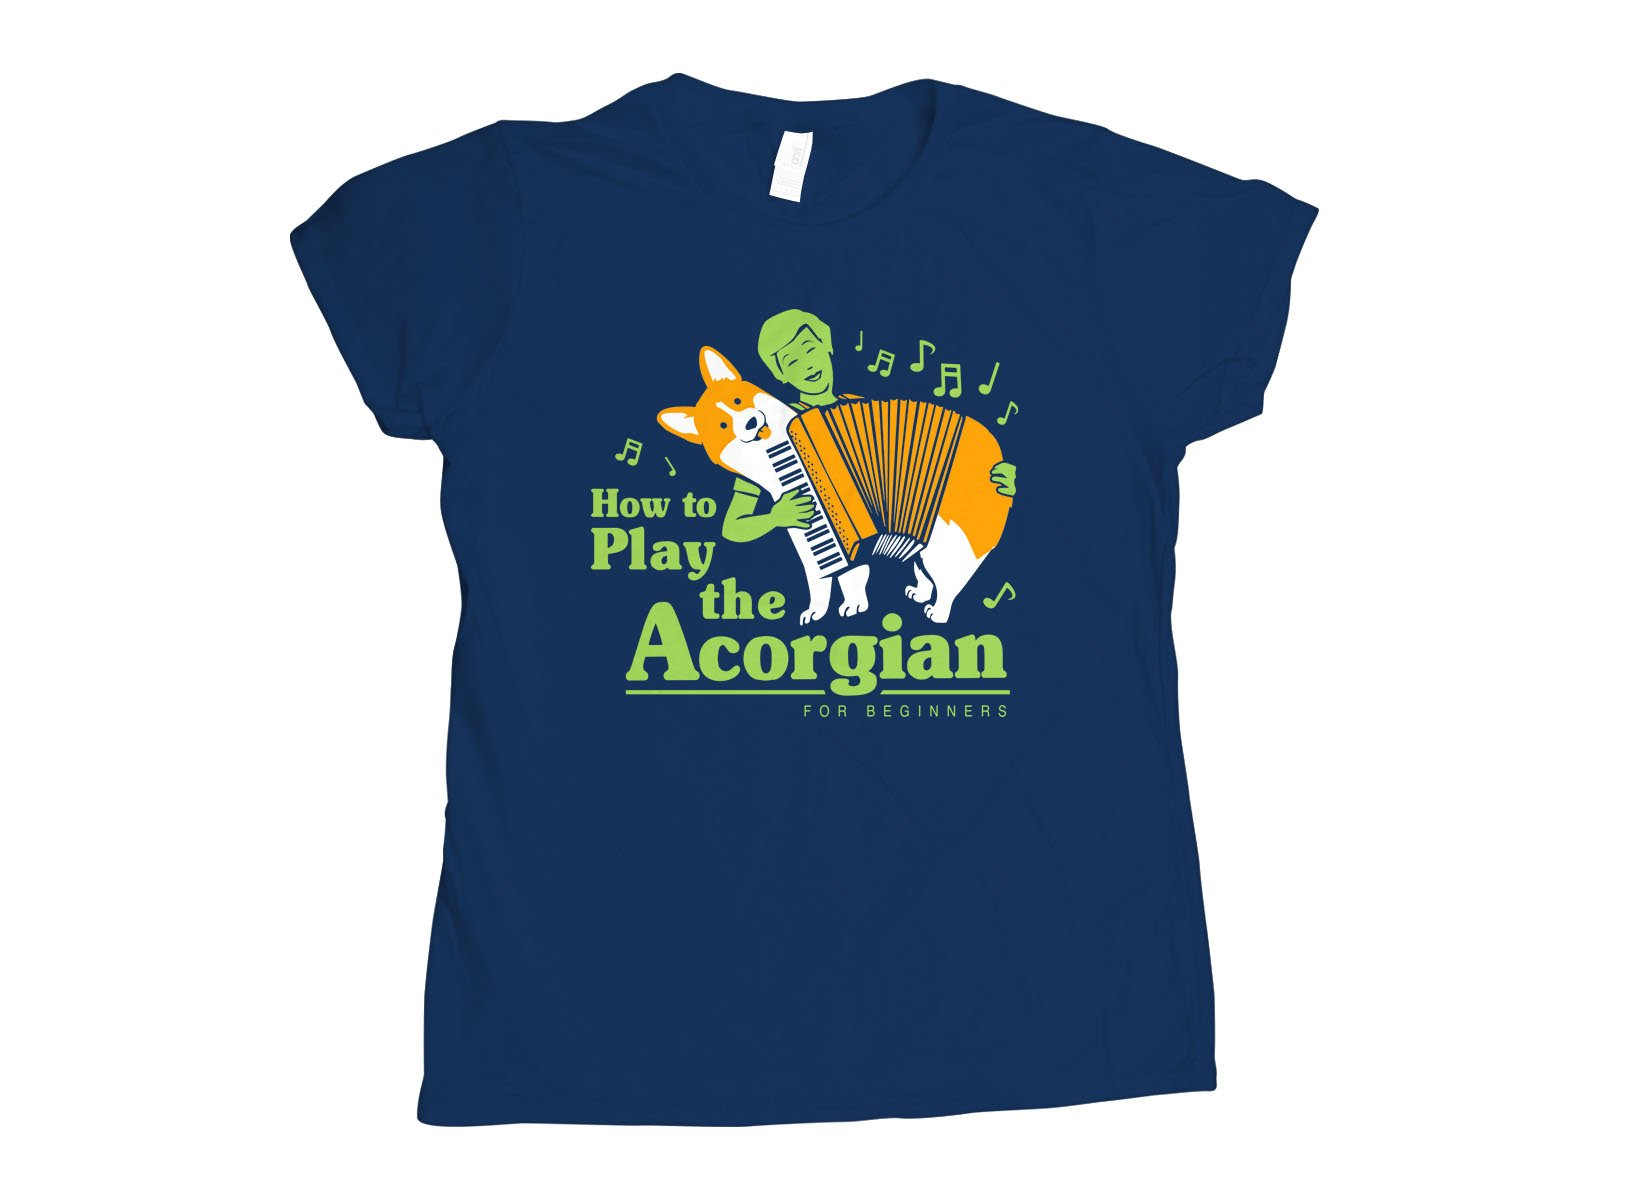 How To Play The Acorgian on Womens T-Shirt